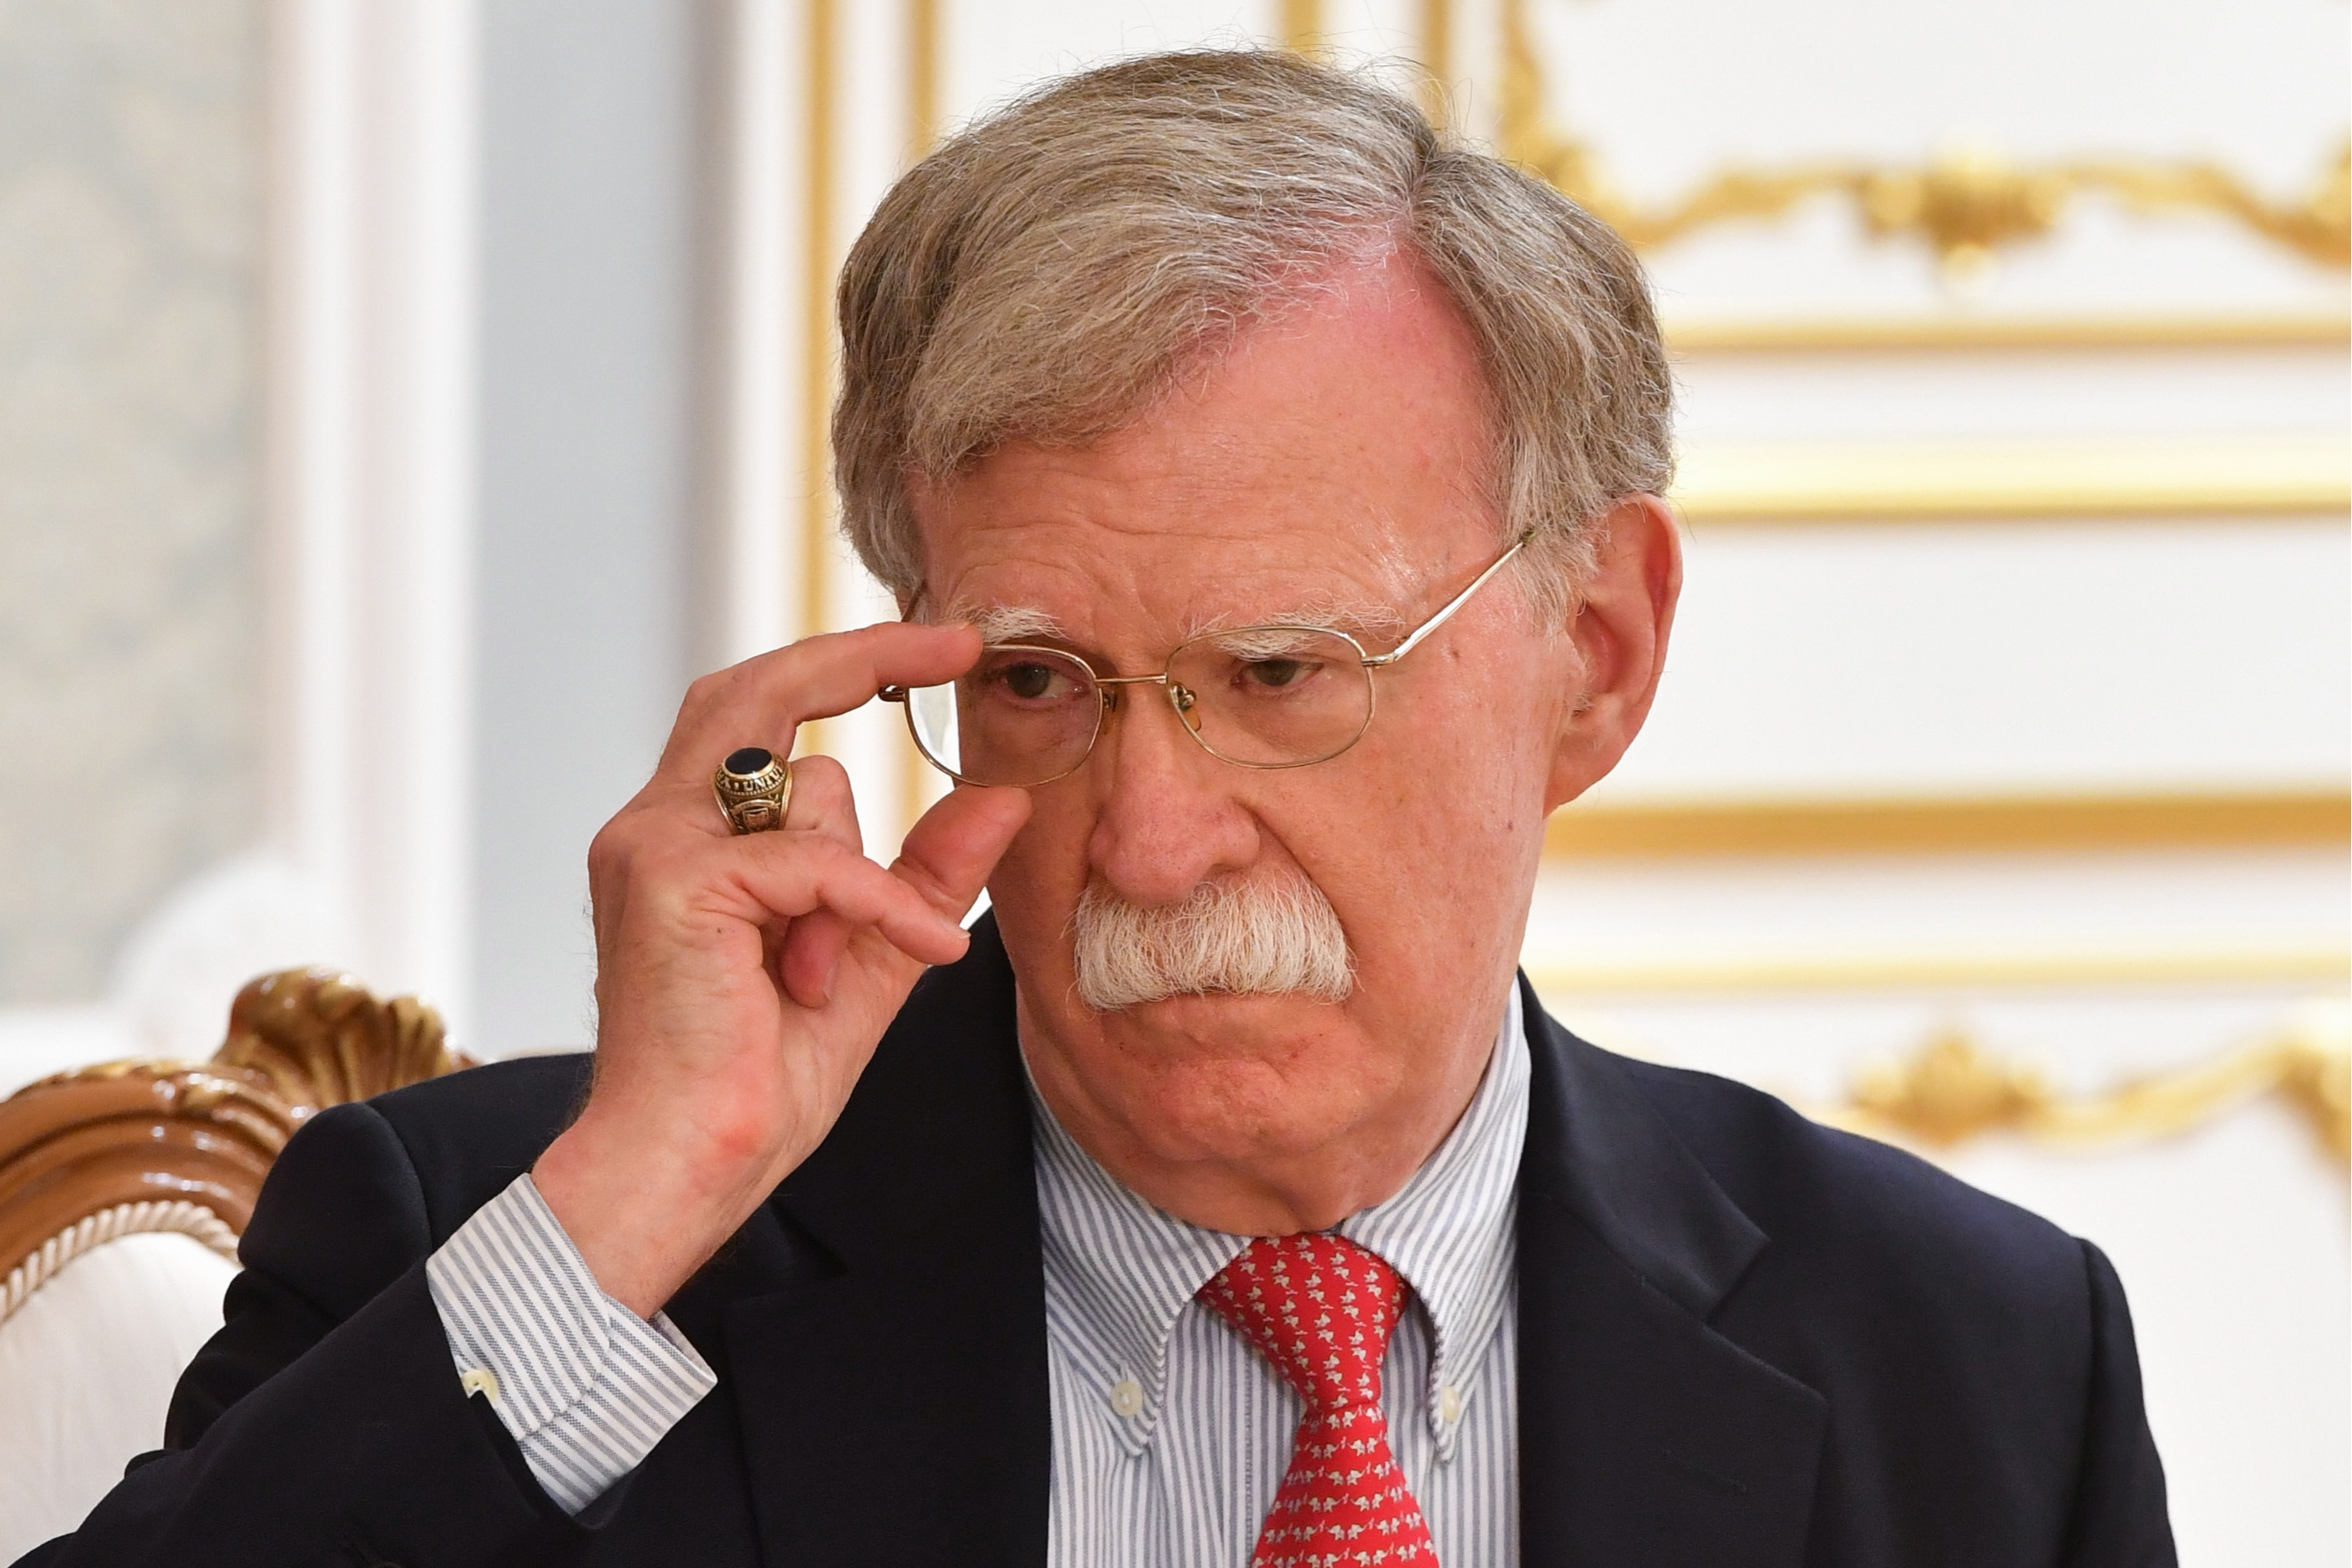 White House May Stop Publication of Bolton's Book